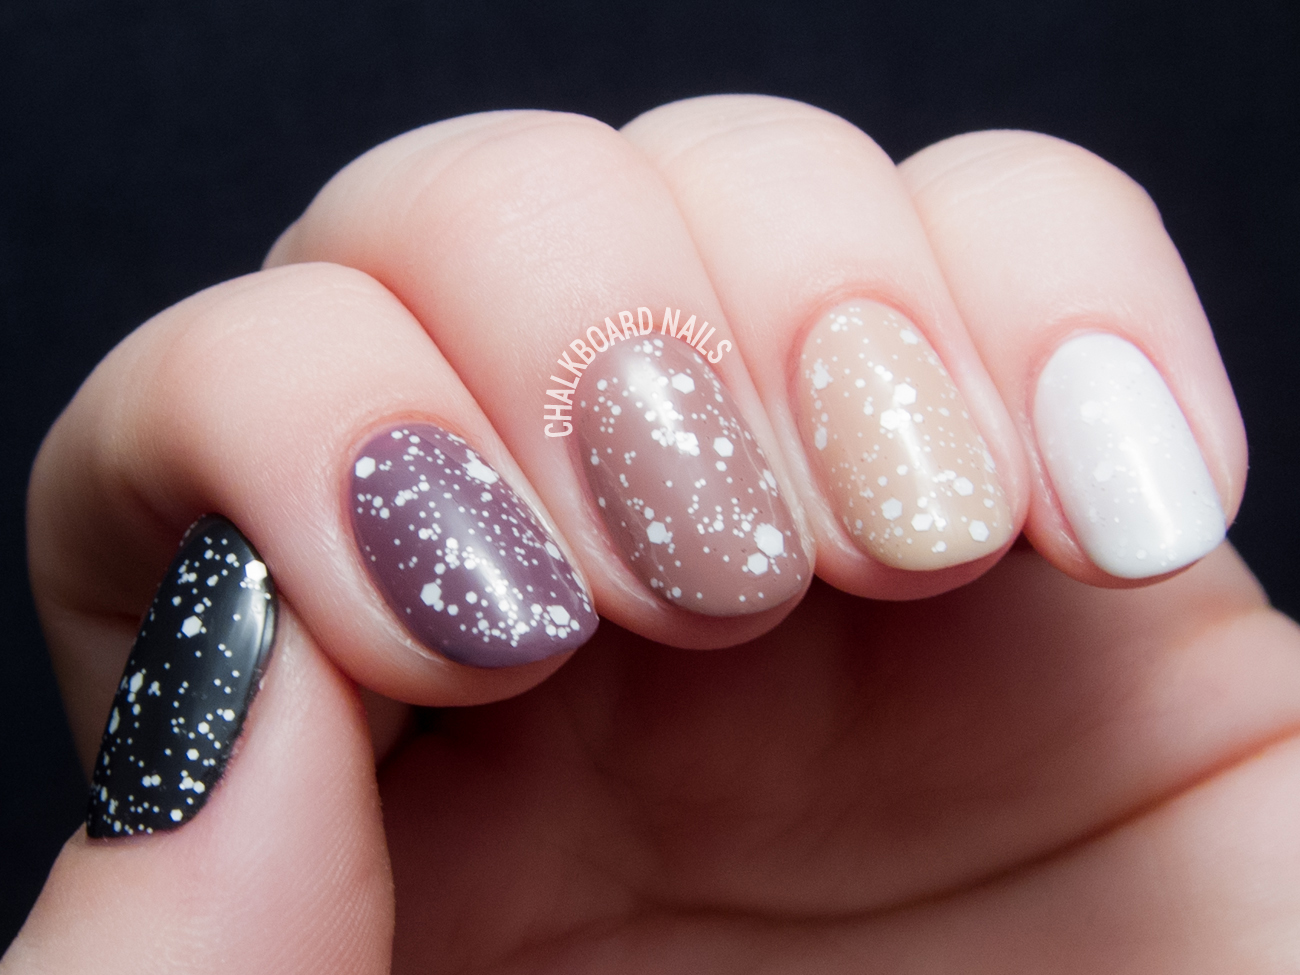 White Nails With Glitter Ombre | www.imgkid.com - The ...